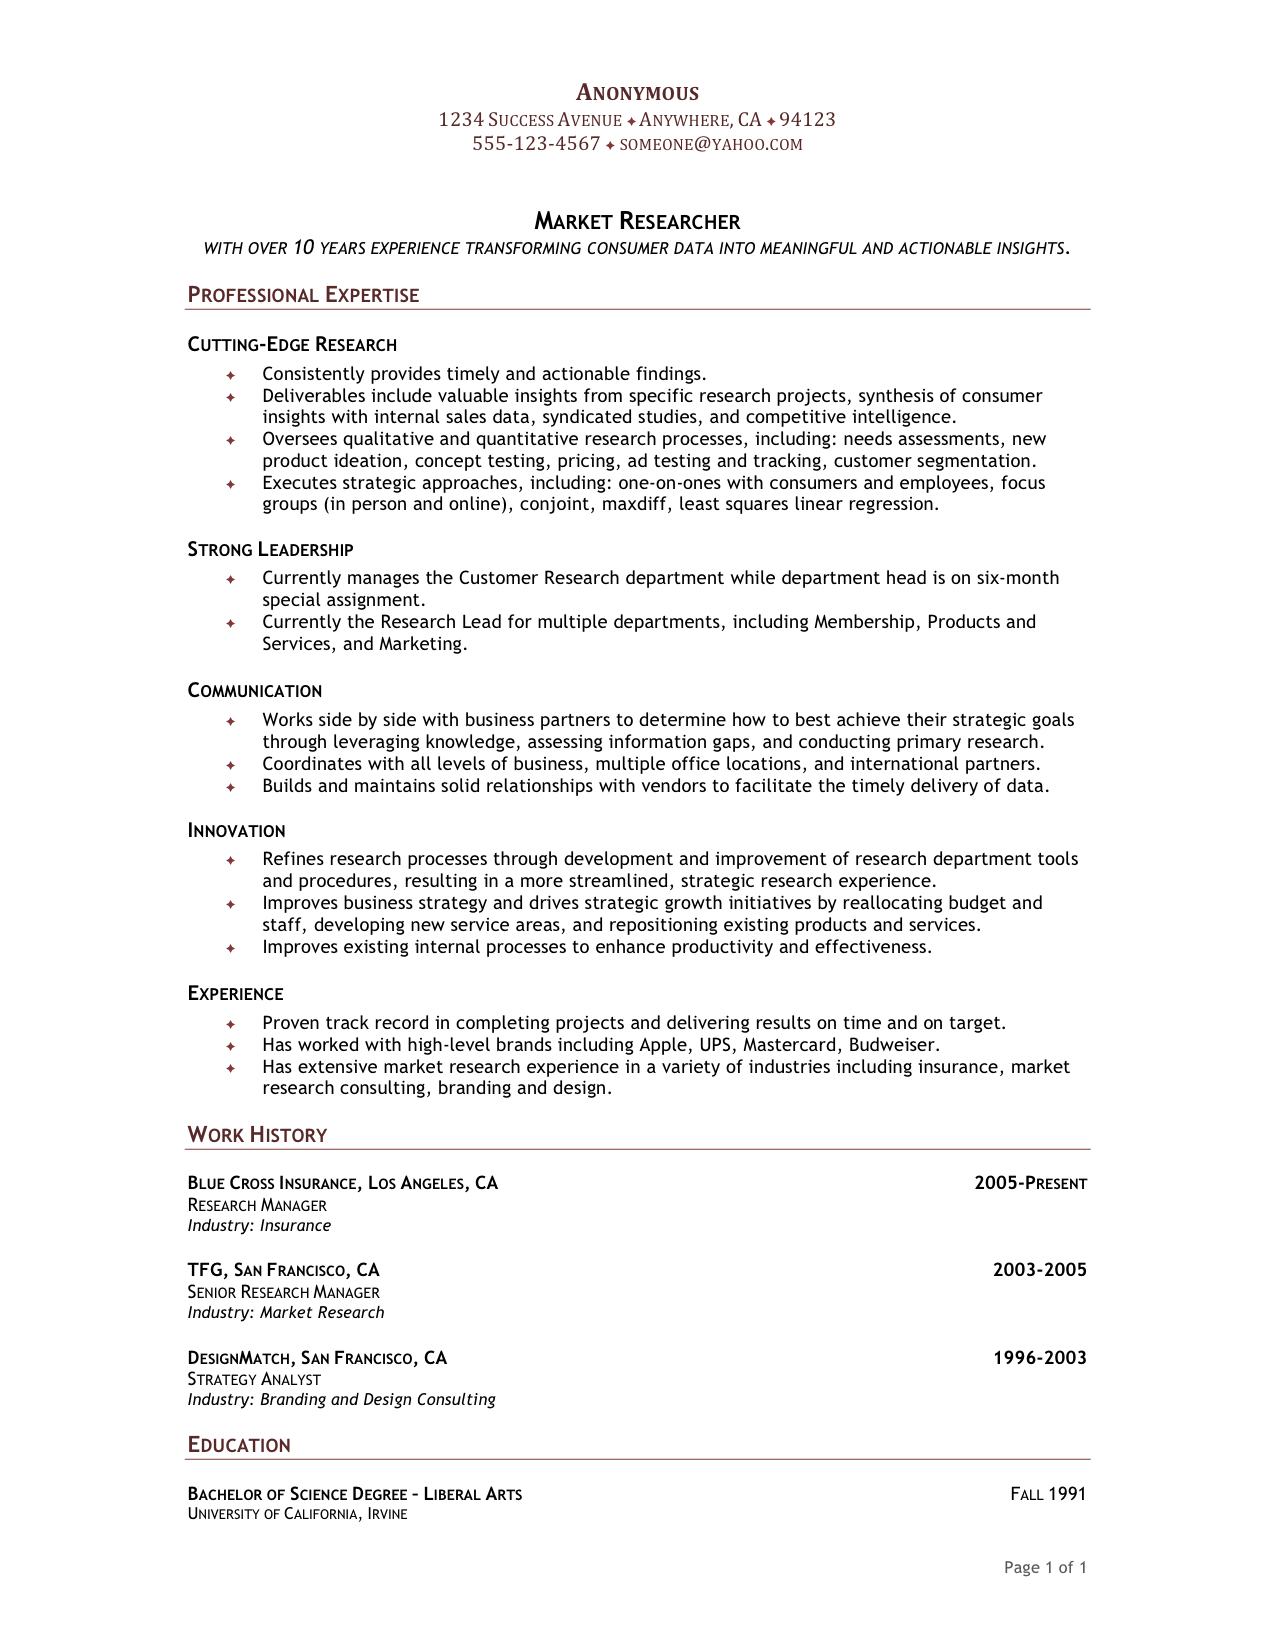 Resume Samples: Chronological vs Function Resume Formats – Robin ...